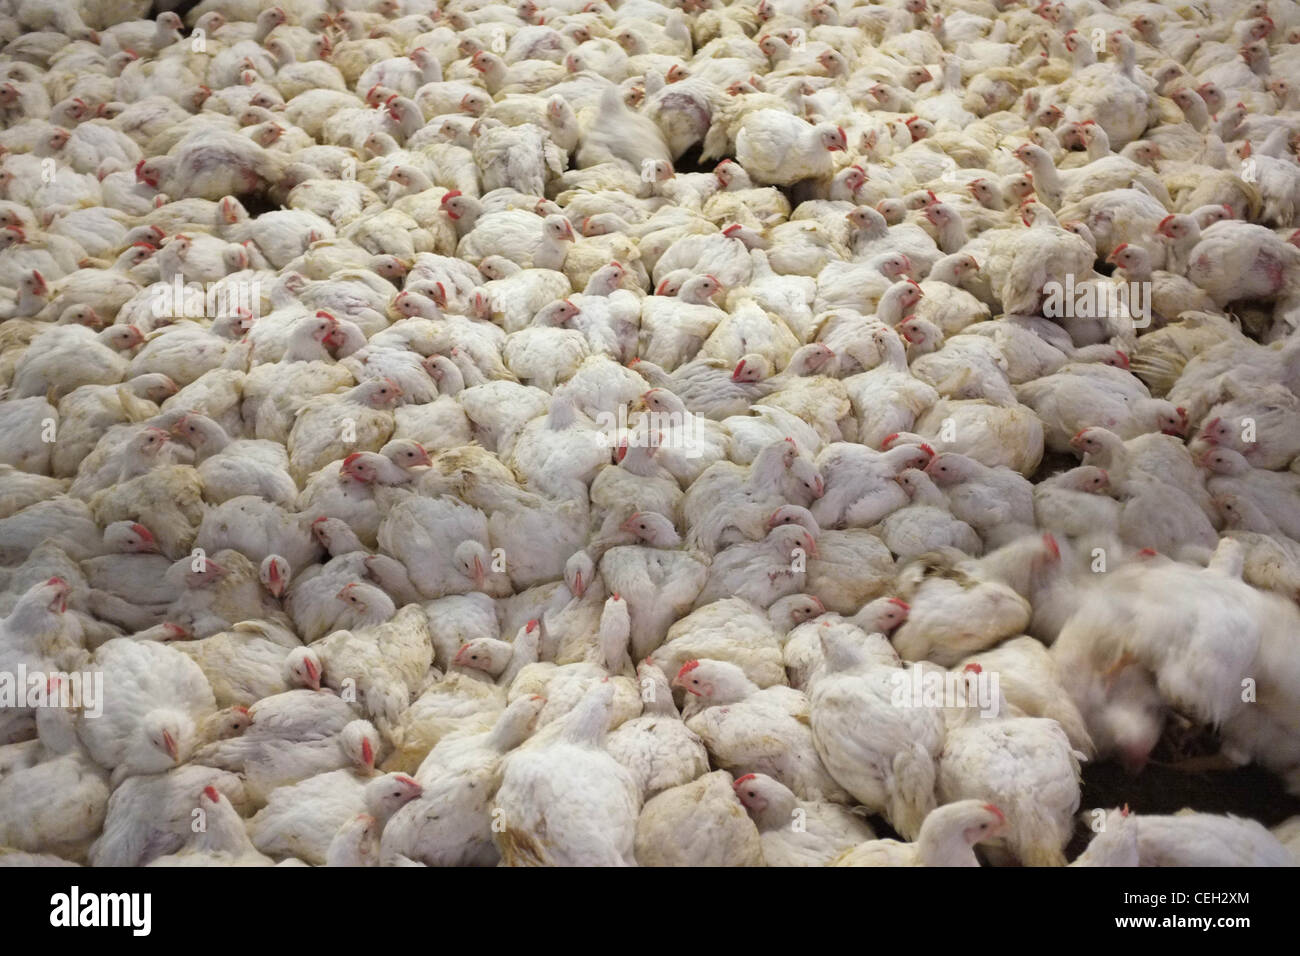 Chickens for meat in an intensive farming environment Stock Photo ...